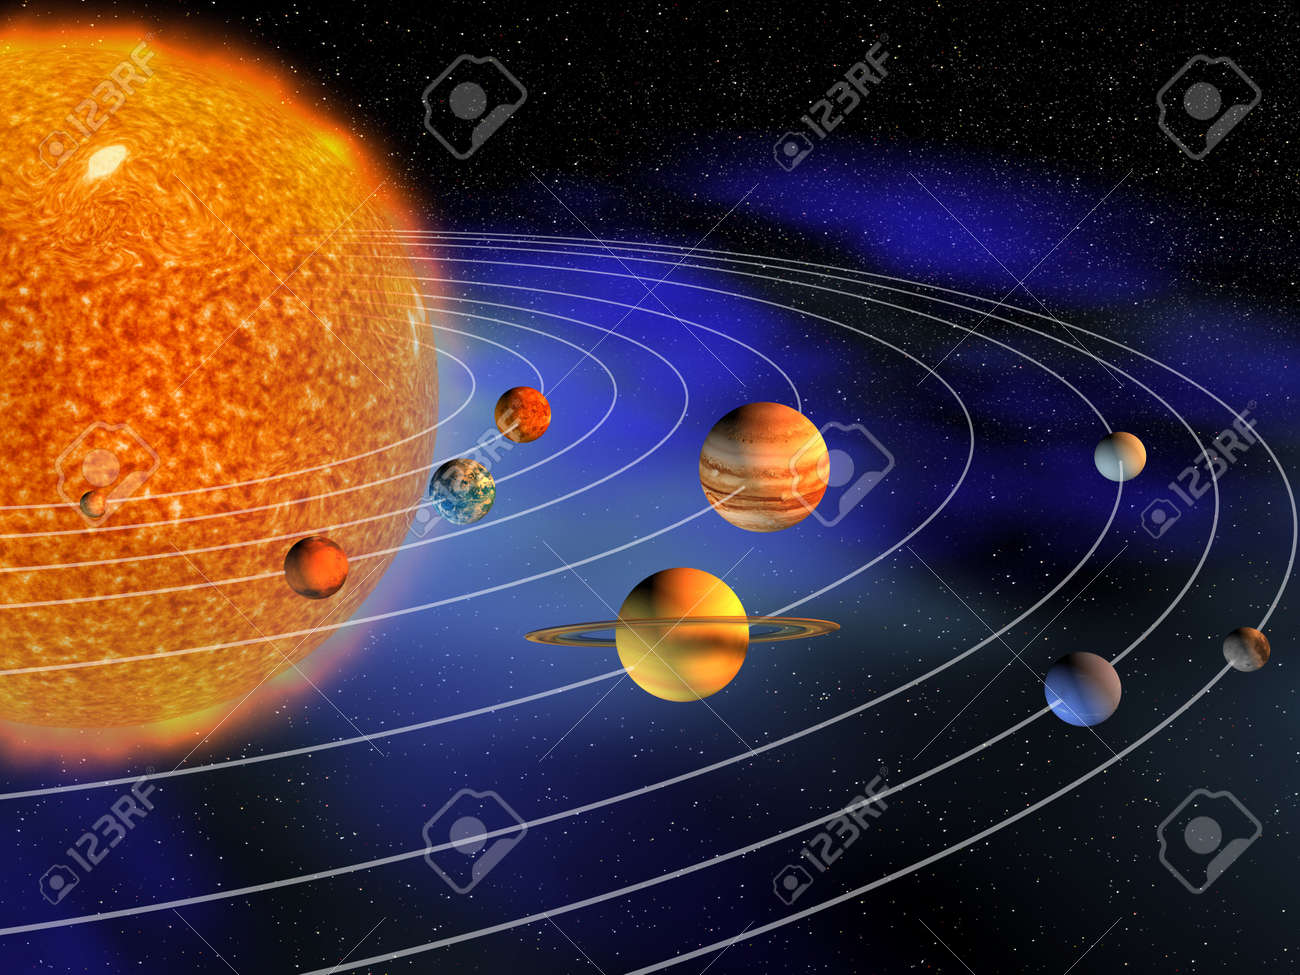 Diagram of planets in solar system 3d render stock photo picture diagram of planets in solar system 3d render stock photo 8041815 ccuart Image collections